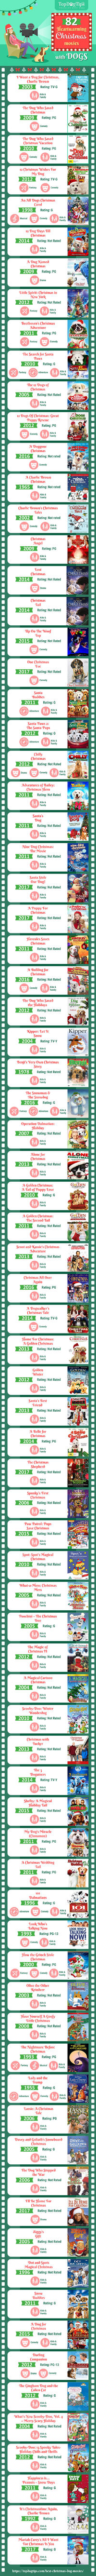 Whether you're looking for an animated family film or a heartwarming story of the magic of the season, there's something for everyone in the family in this infographic list of movies with dogs.